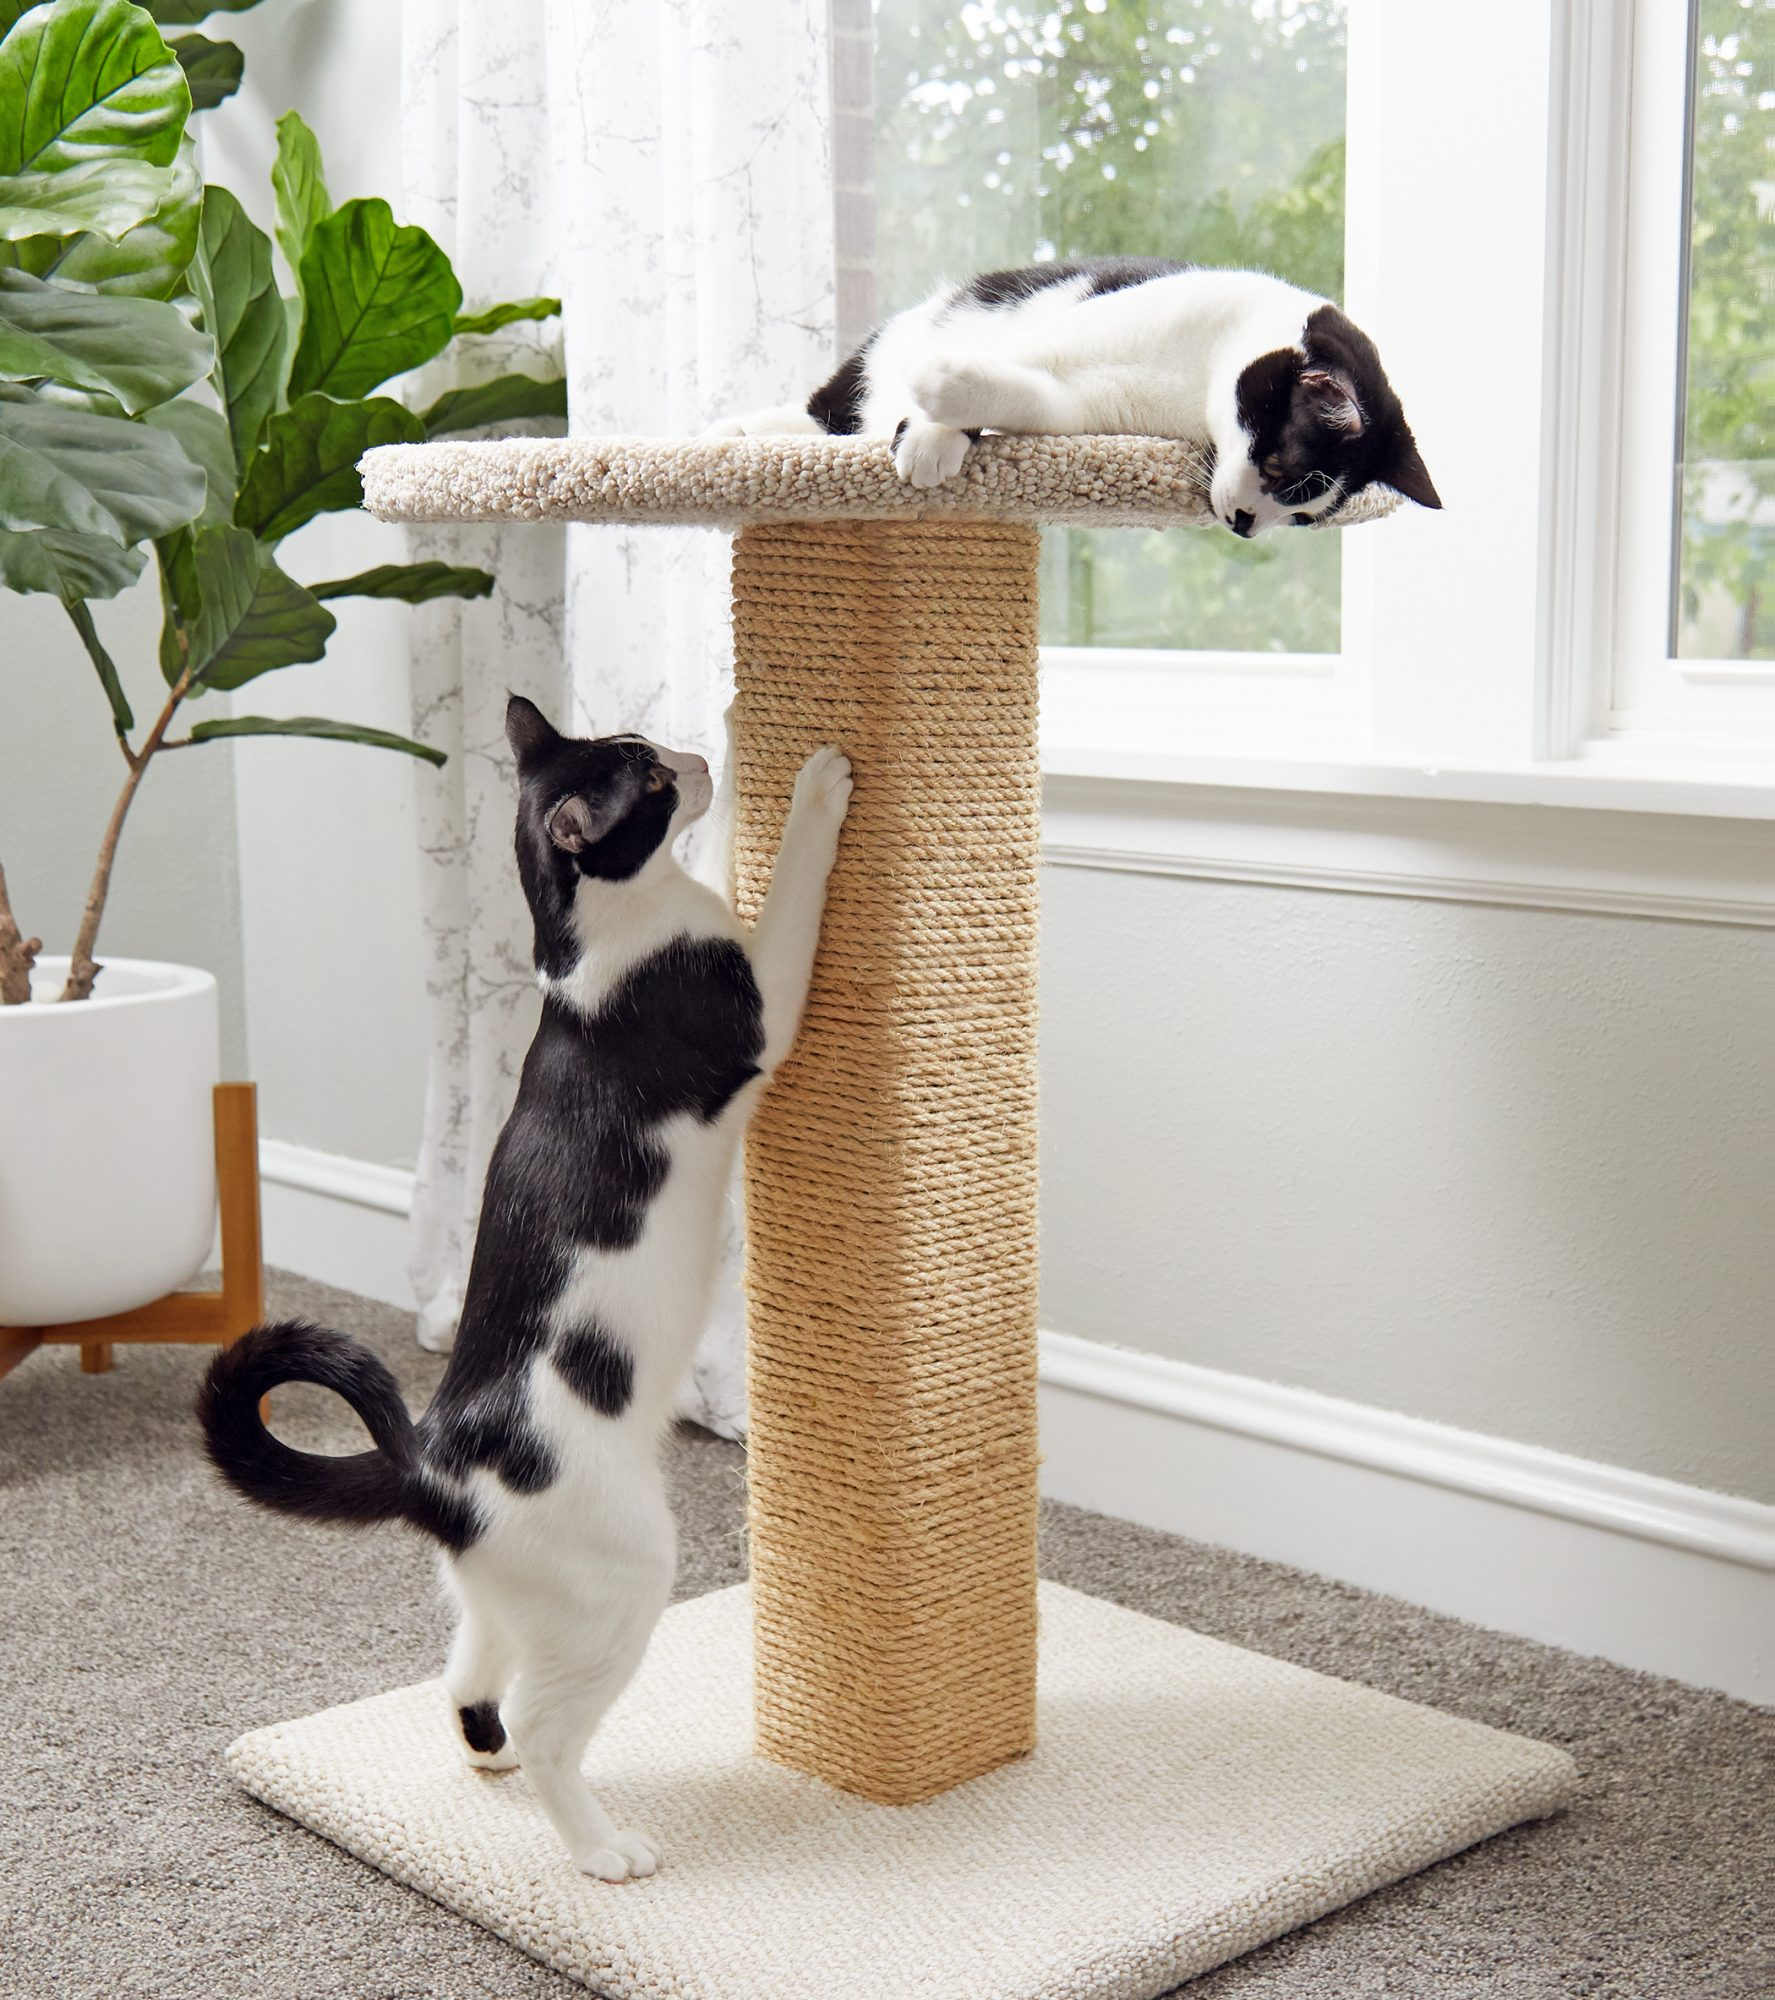 two cats lounging and playing on a DIY cat scratcher next to a window in their home